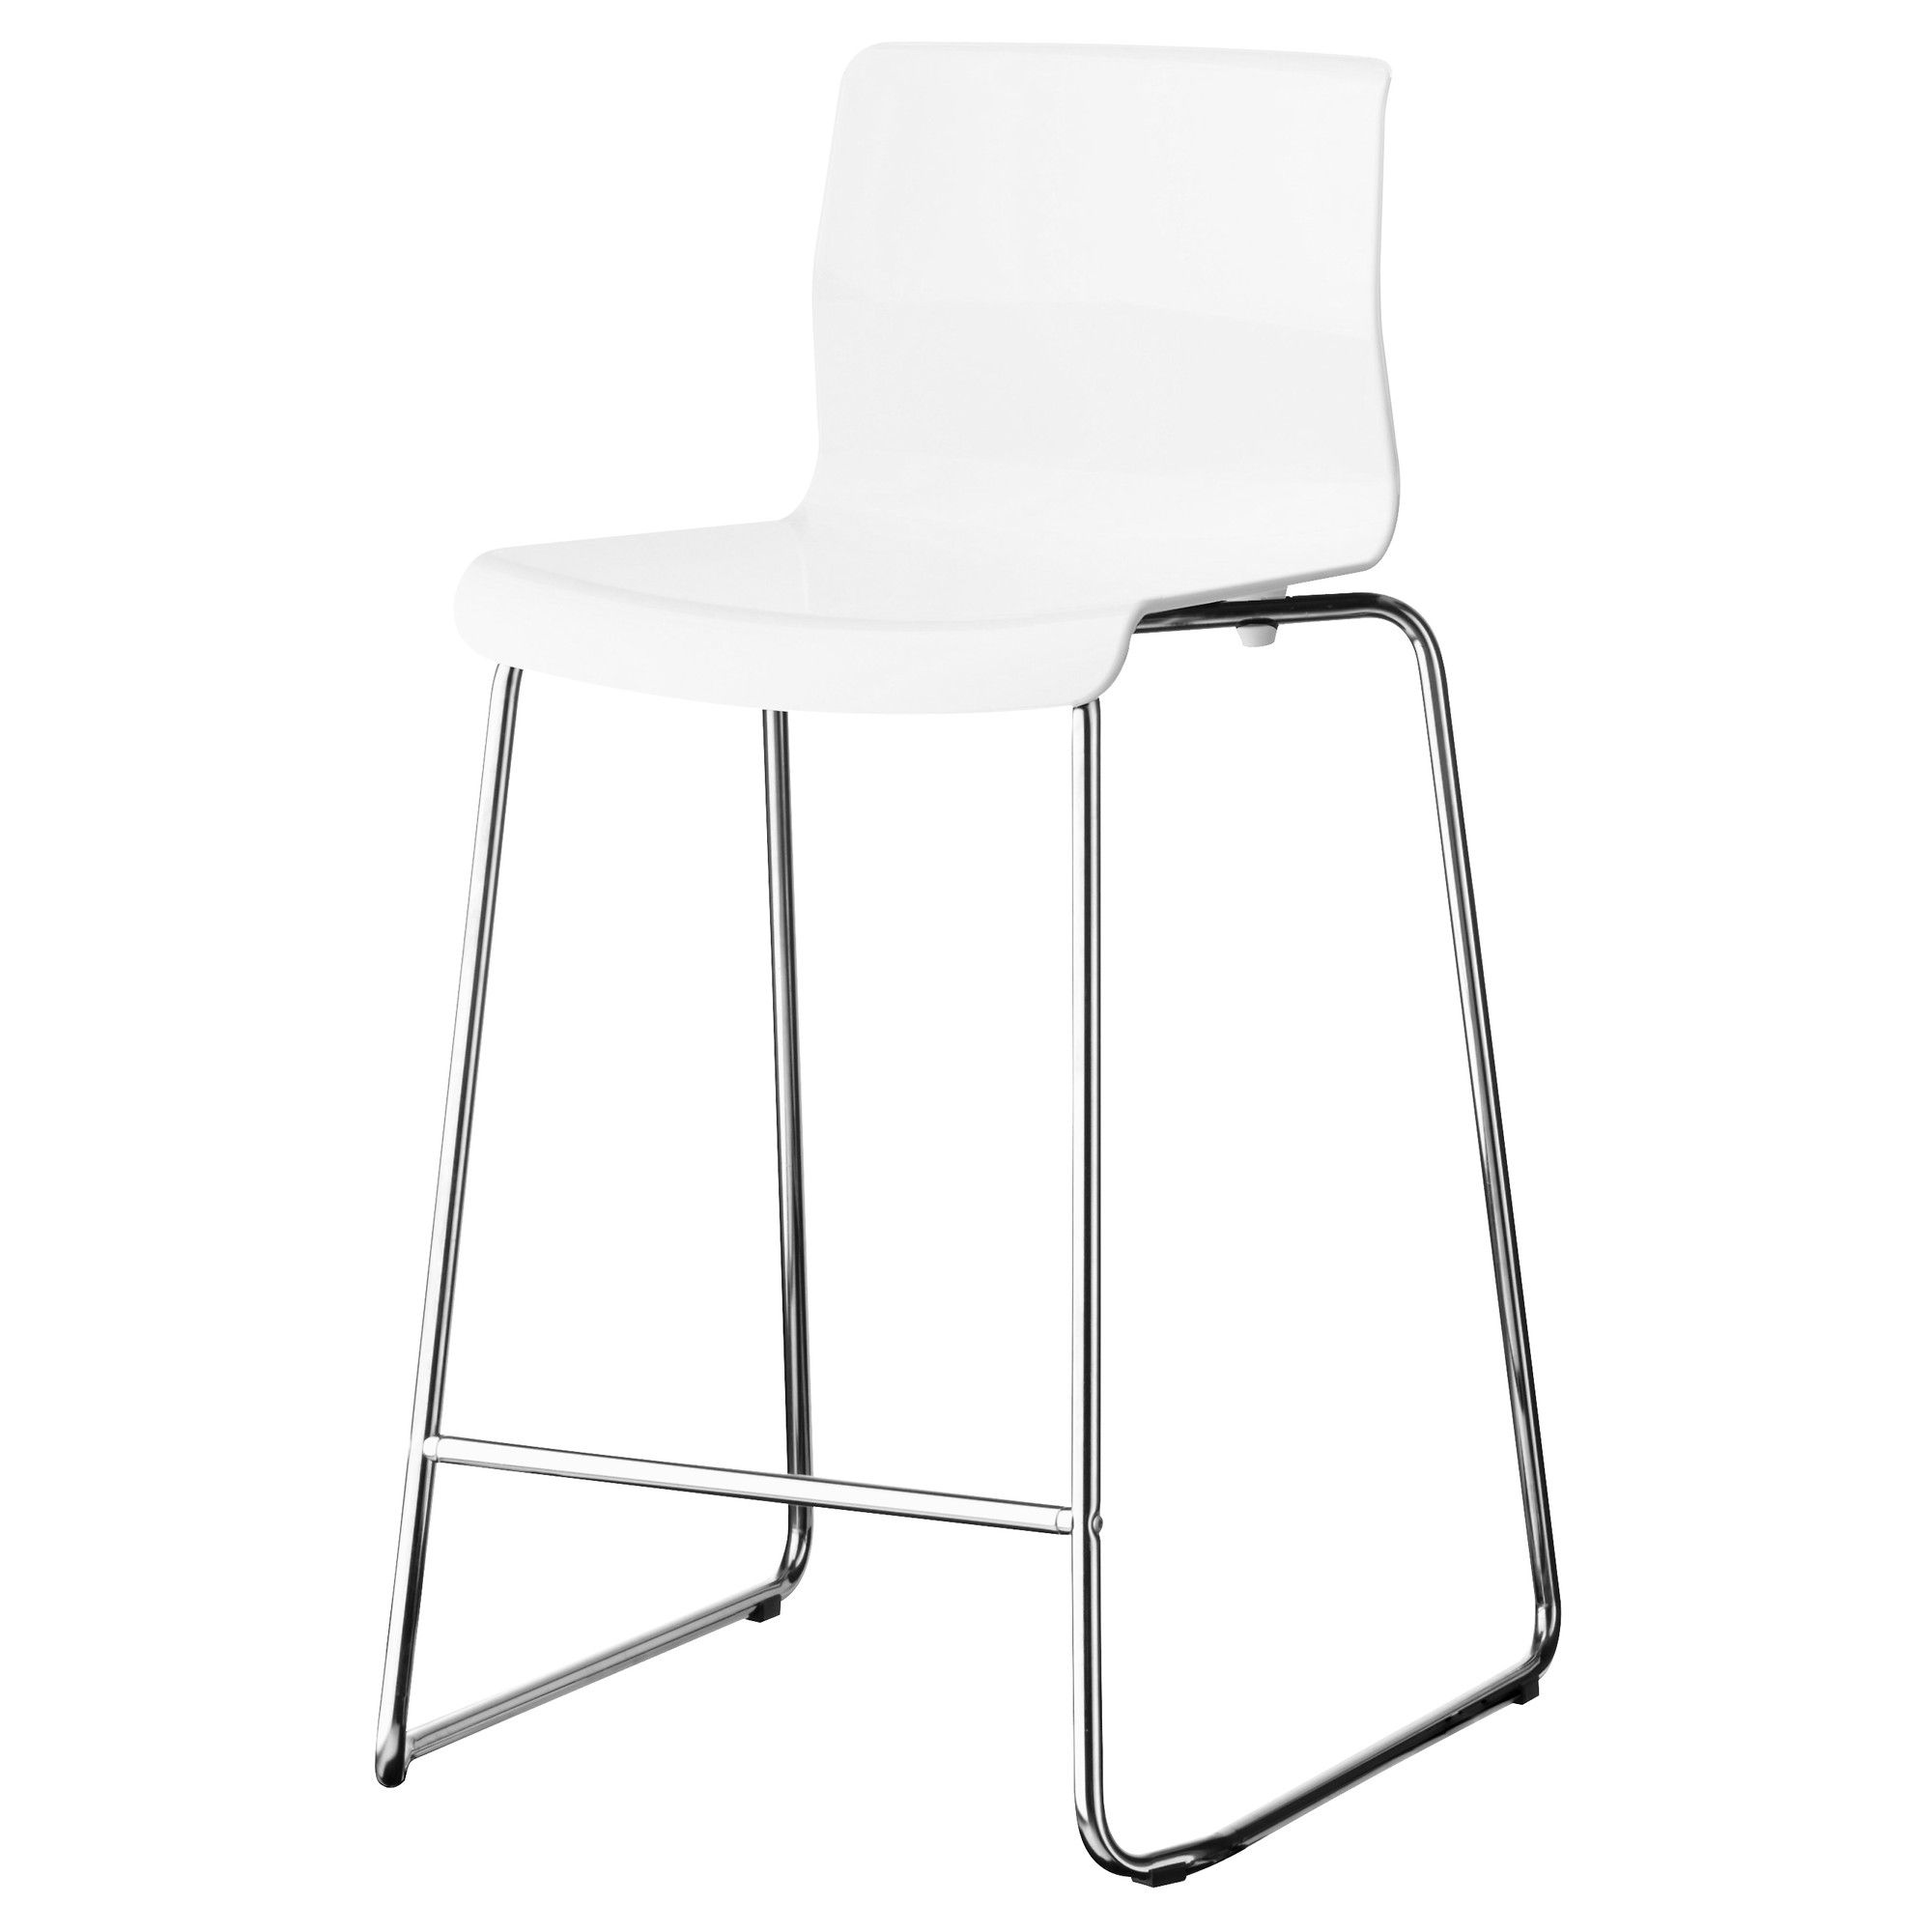 IKEA GLENN White, Chrome Plated Bar stool | White bar stools ...